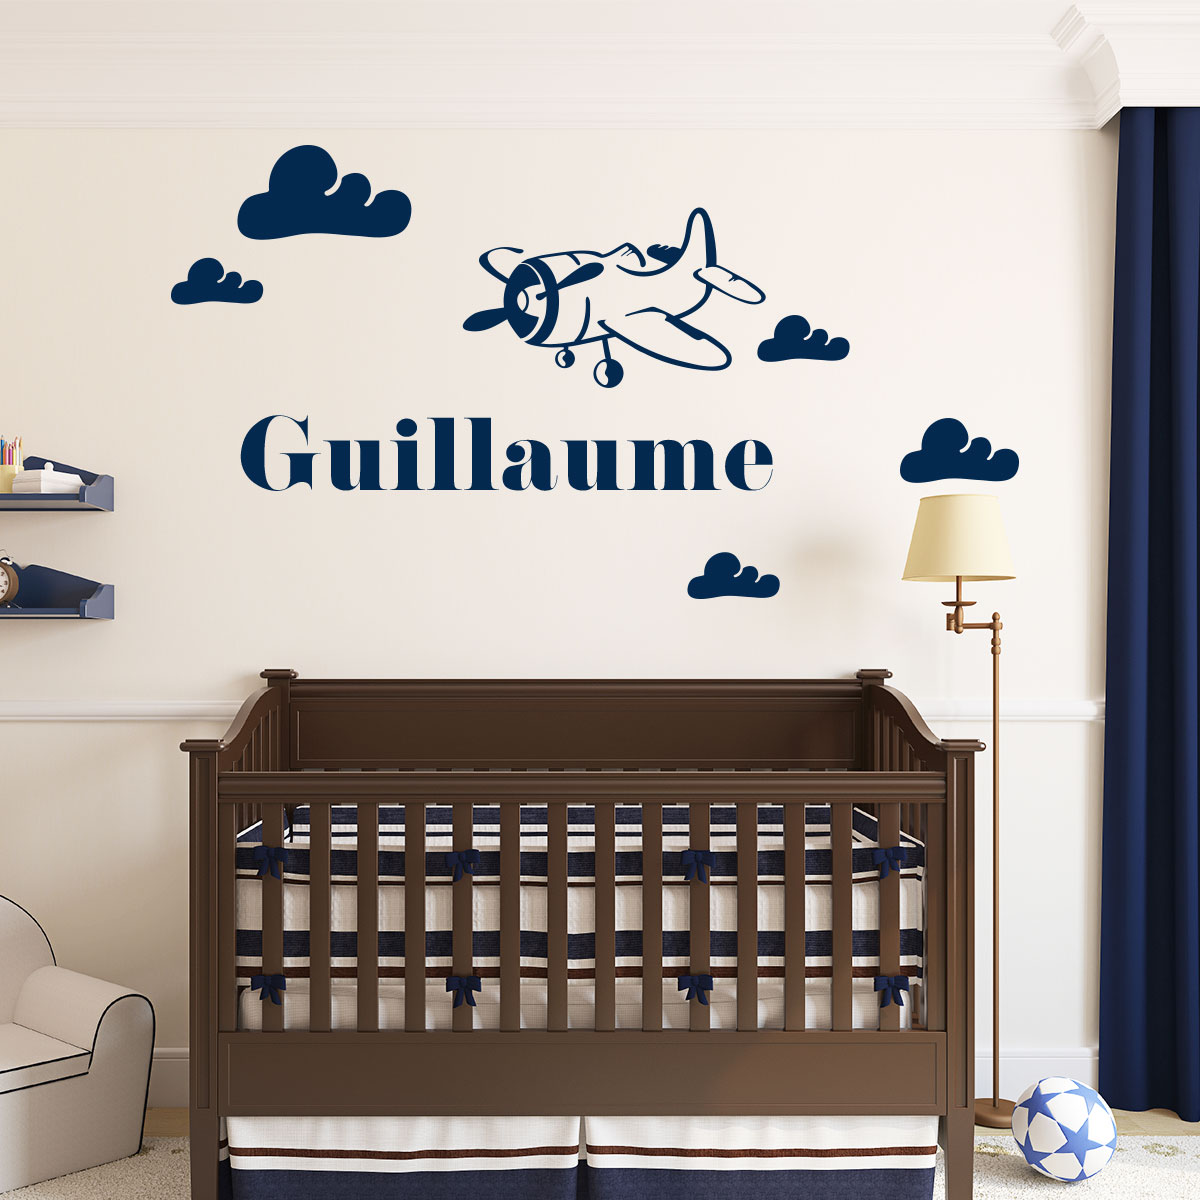 Awesome stickers chambre bebe nuage photos awesome - Stickers chambre bebe ...